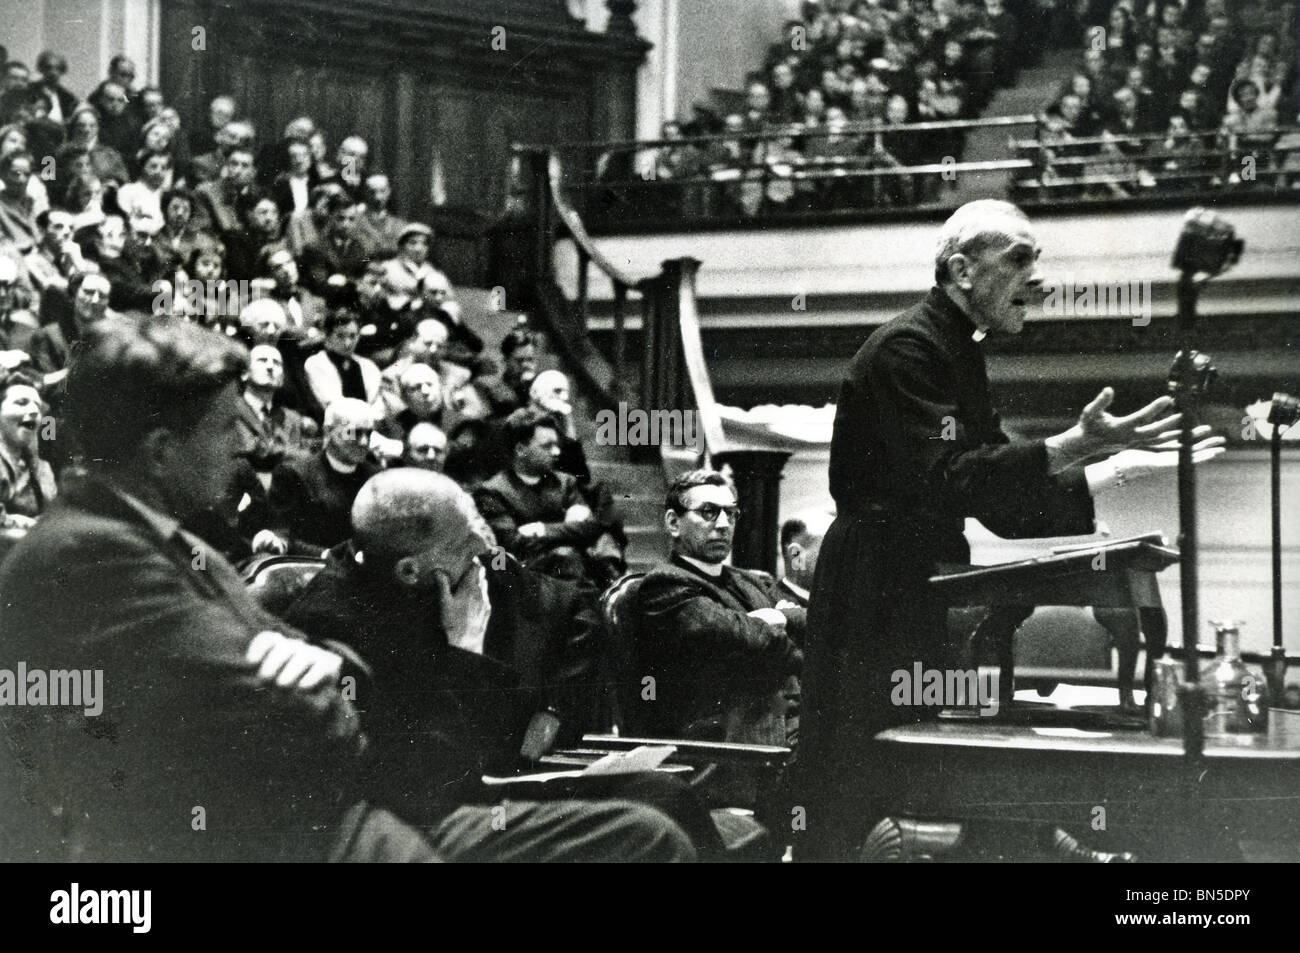 TREVOR HUDDLESTON (1913-98) Anglican priest making an anti-apartheid speech at Central Hall, Westminster -see Description - Stock Image